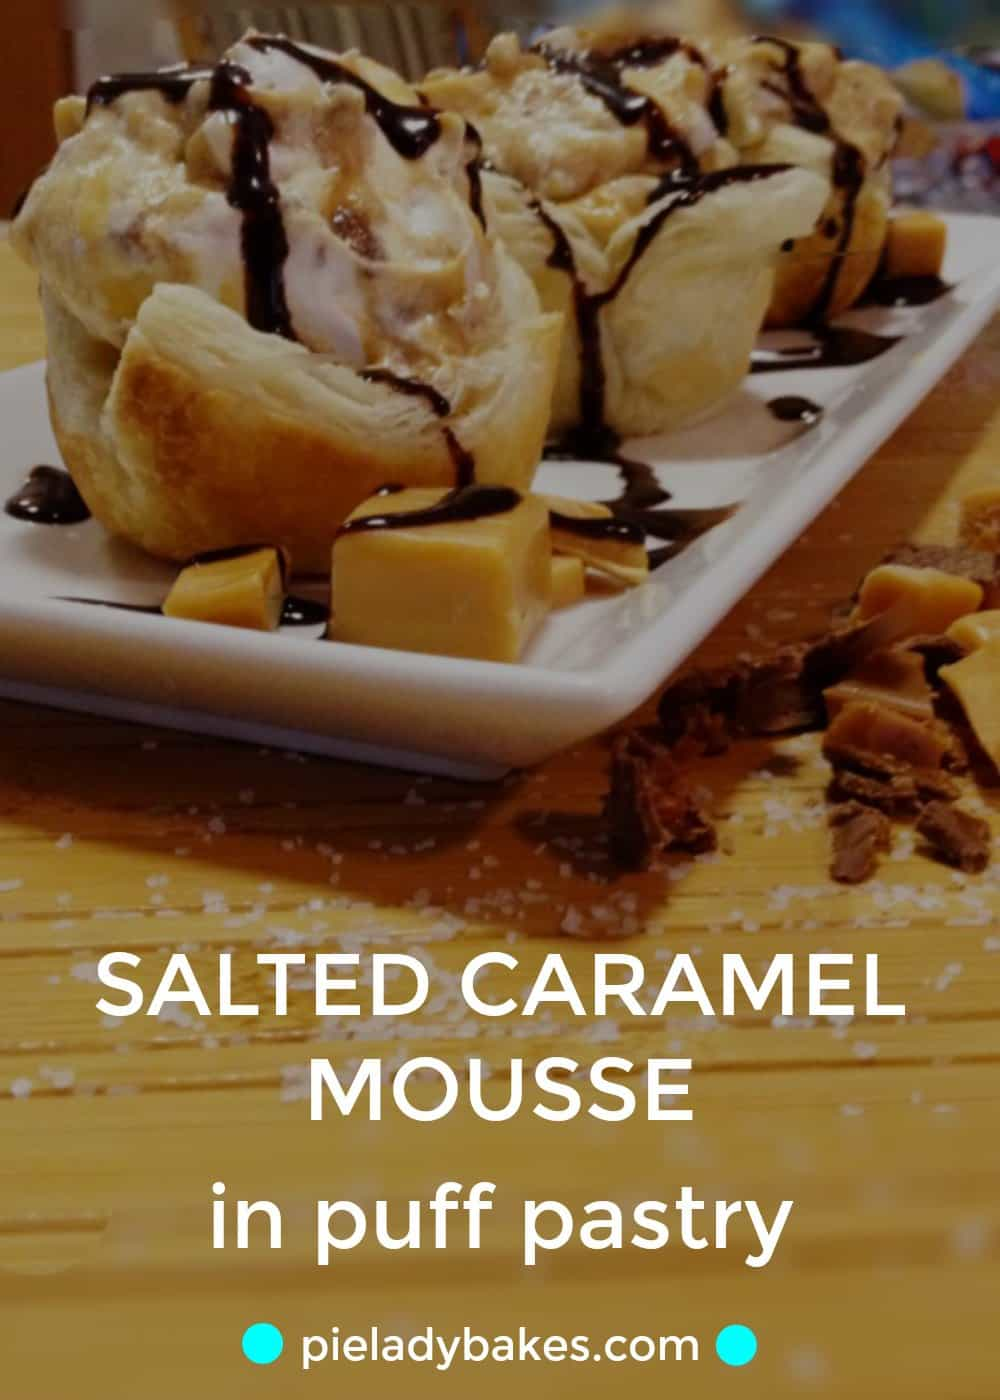 Salted caramel, chocolate and crunchy toffee in a creamy caramel mousse! This recipe is so easy to make too, uses puff pastry too!